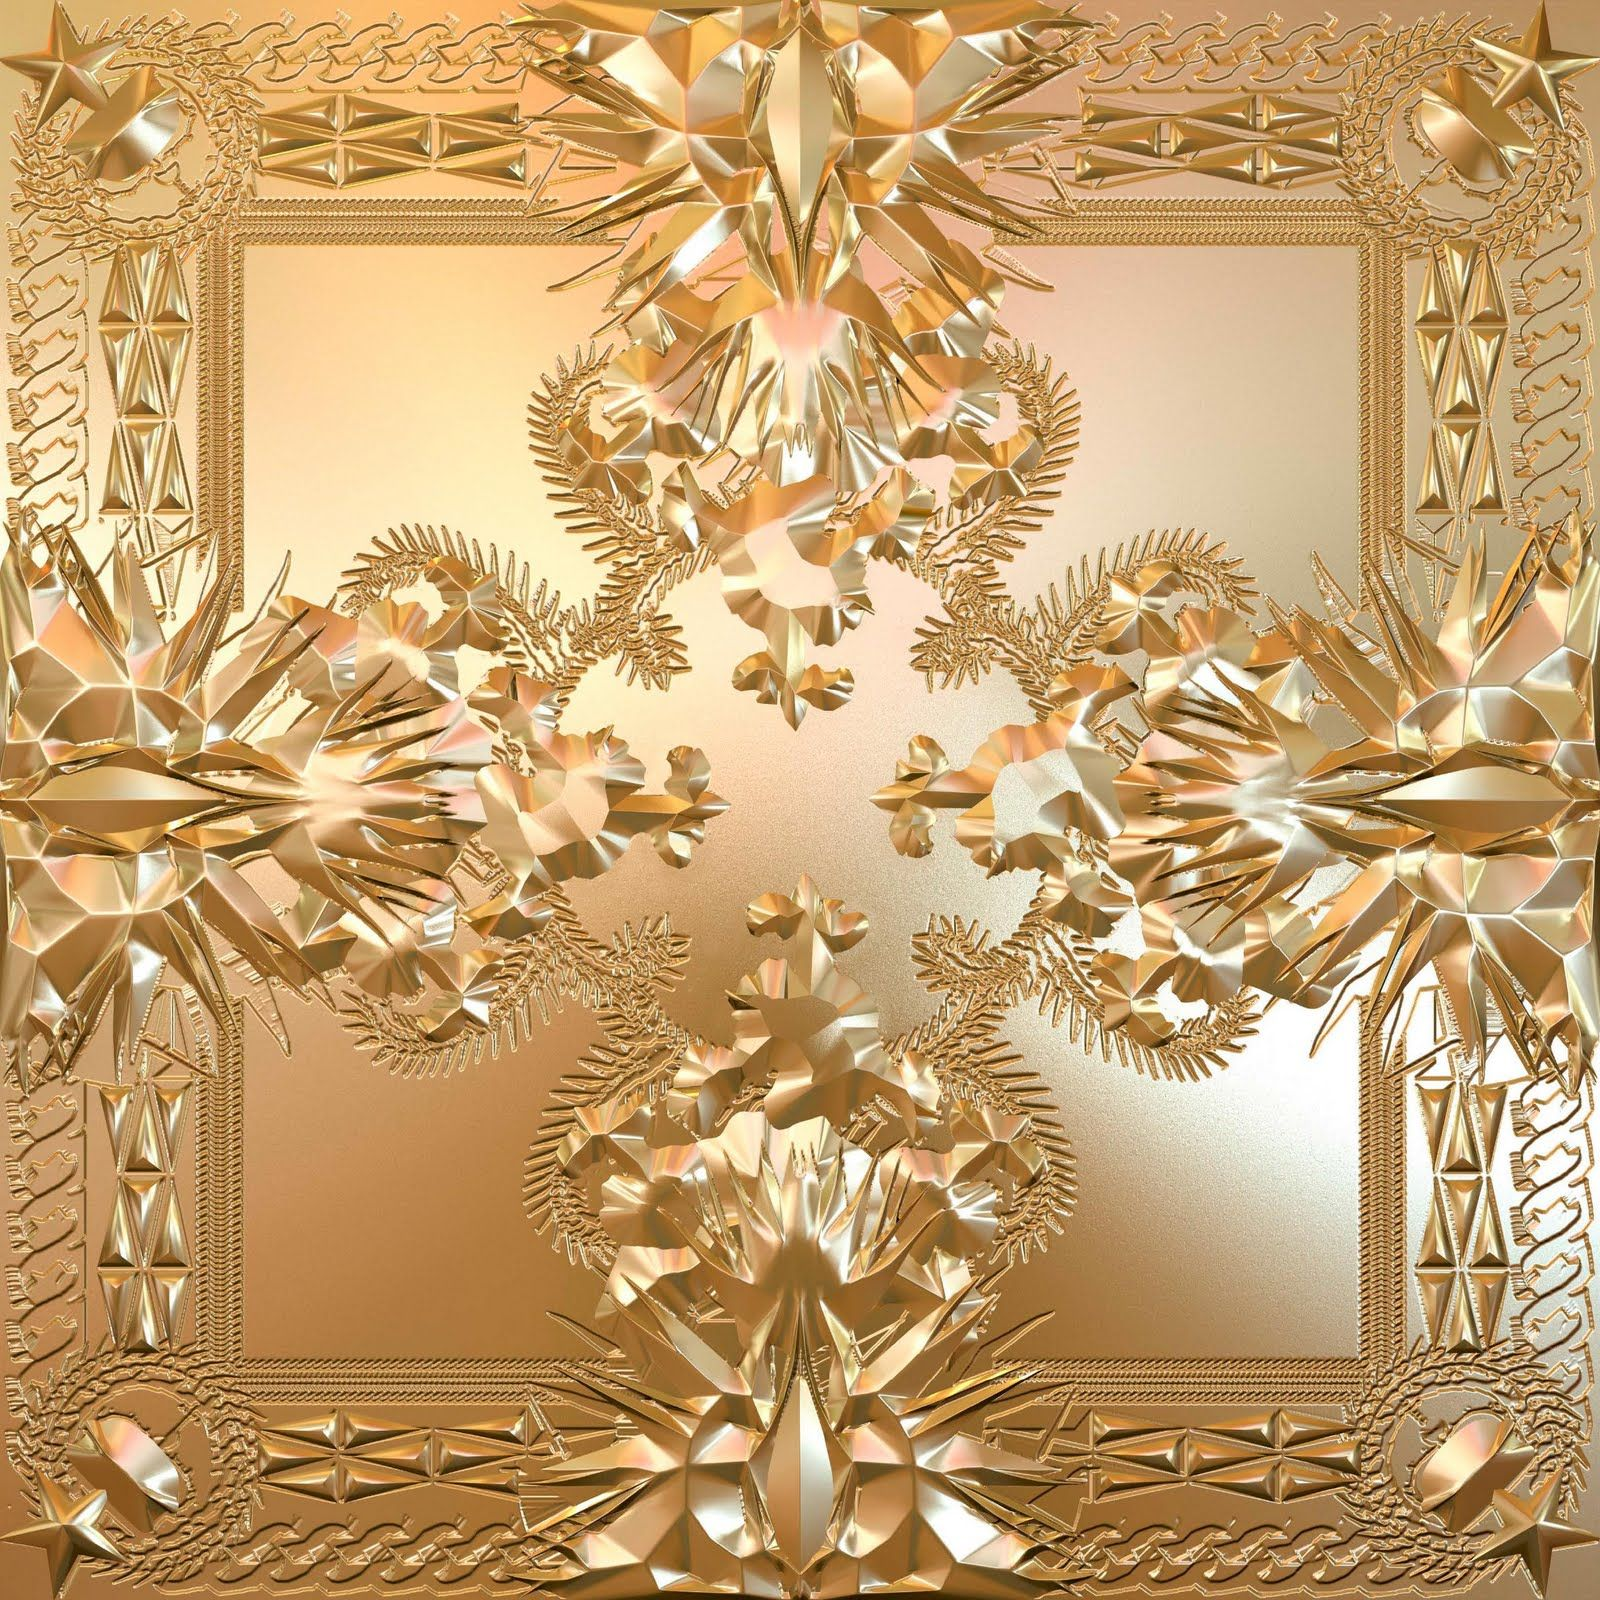 Jay Z Kanye West Watch The Throne Dirigida